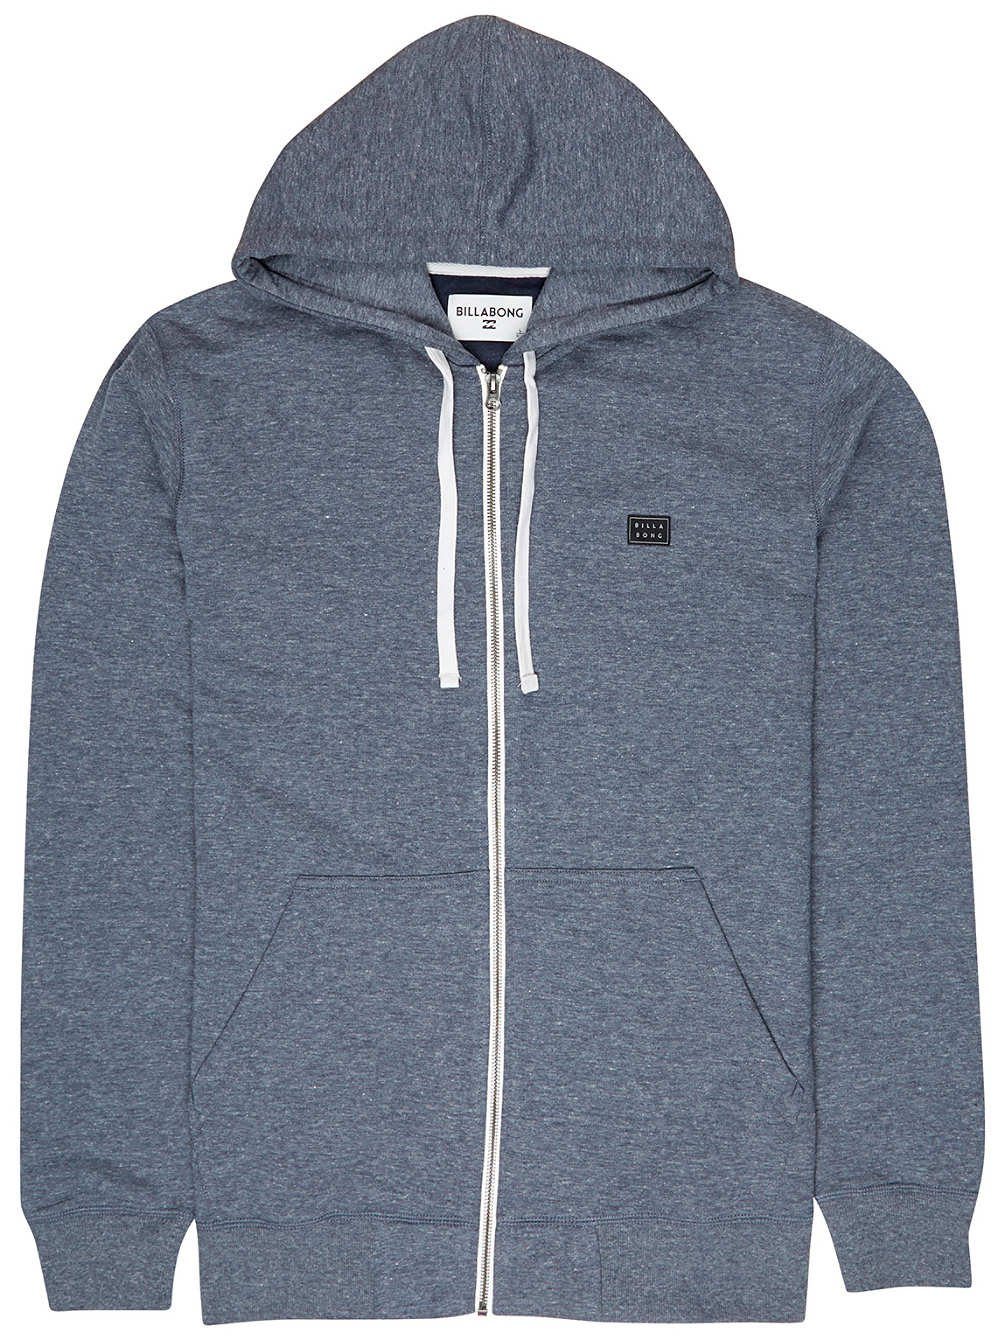 BILLABONG All Day Zip Hood Jersey, Hombre, Azul (Navy 21), X-Large (Tamaño del Fabricante:XL)